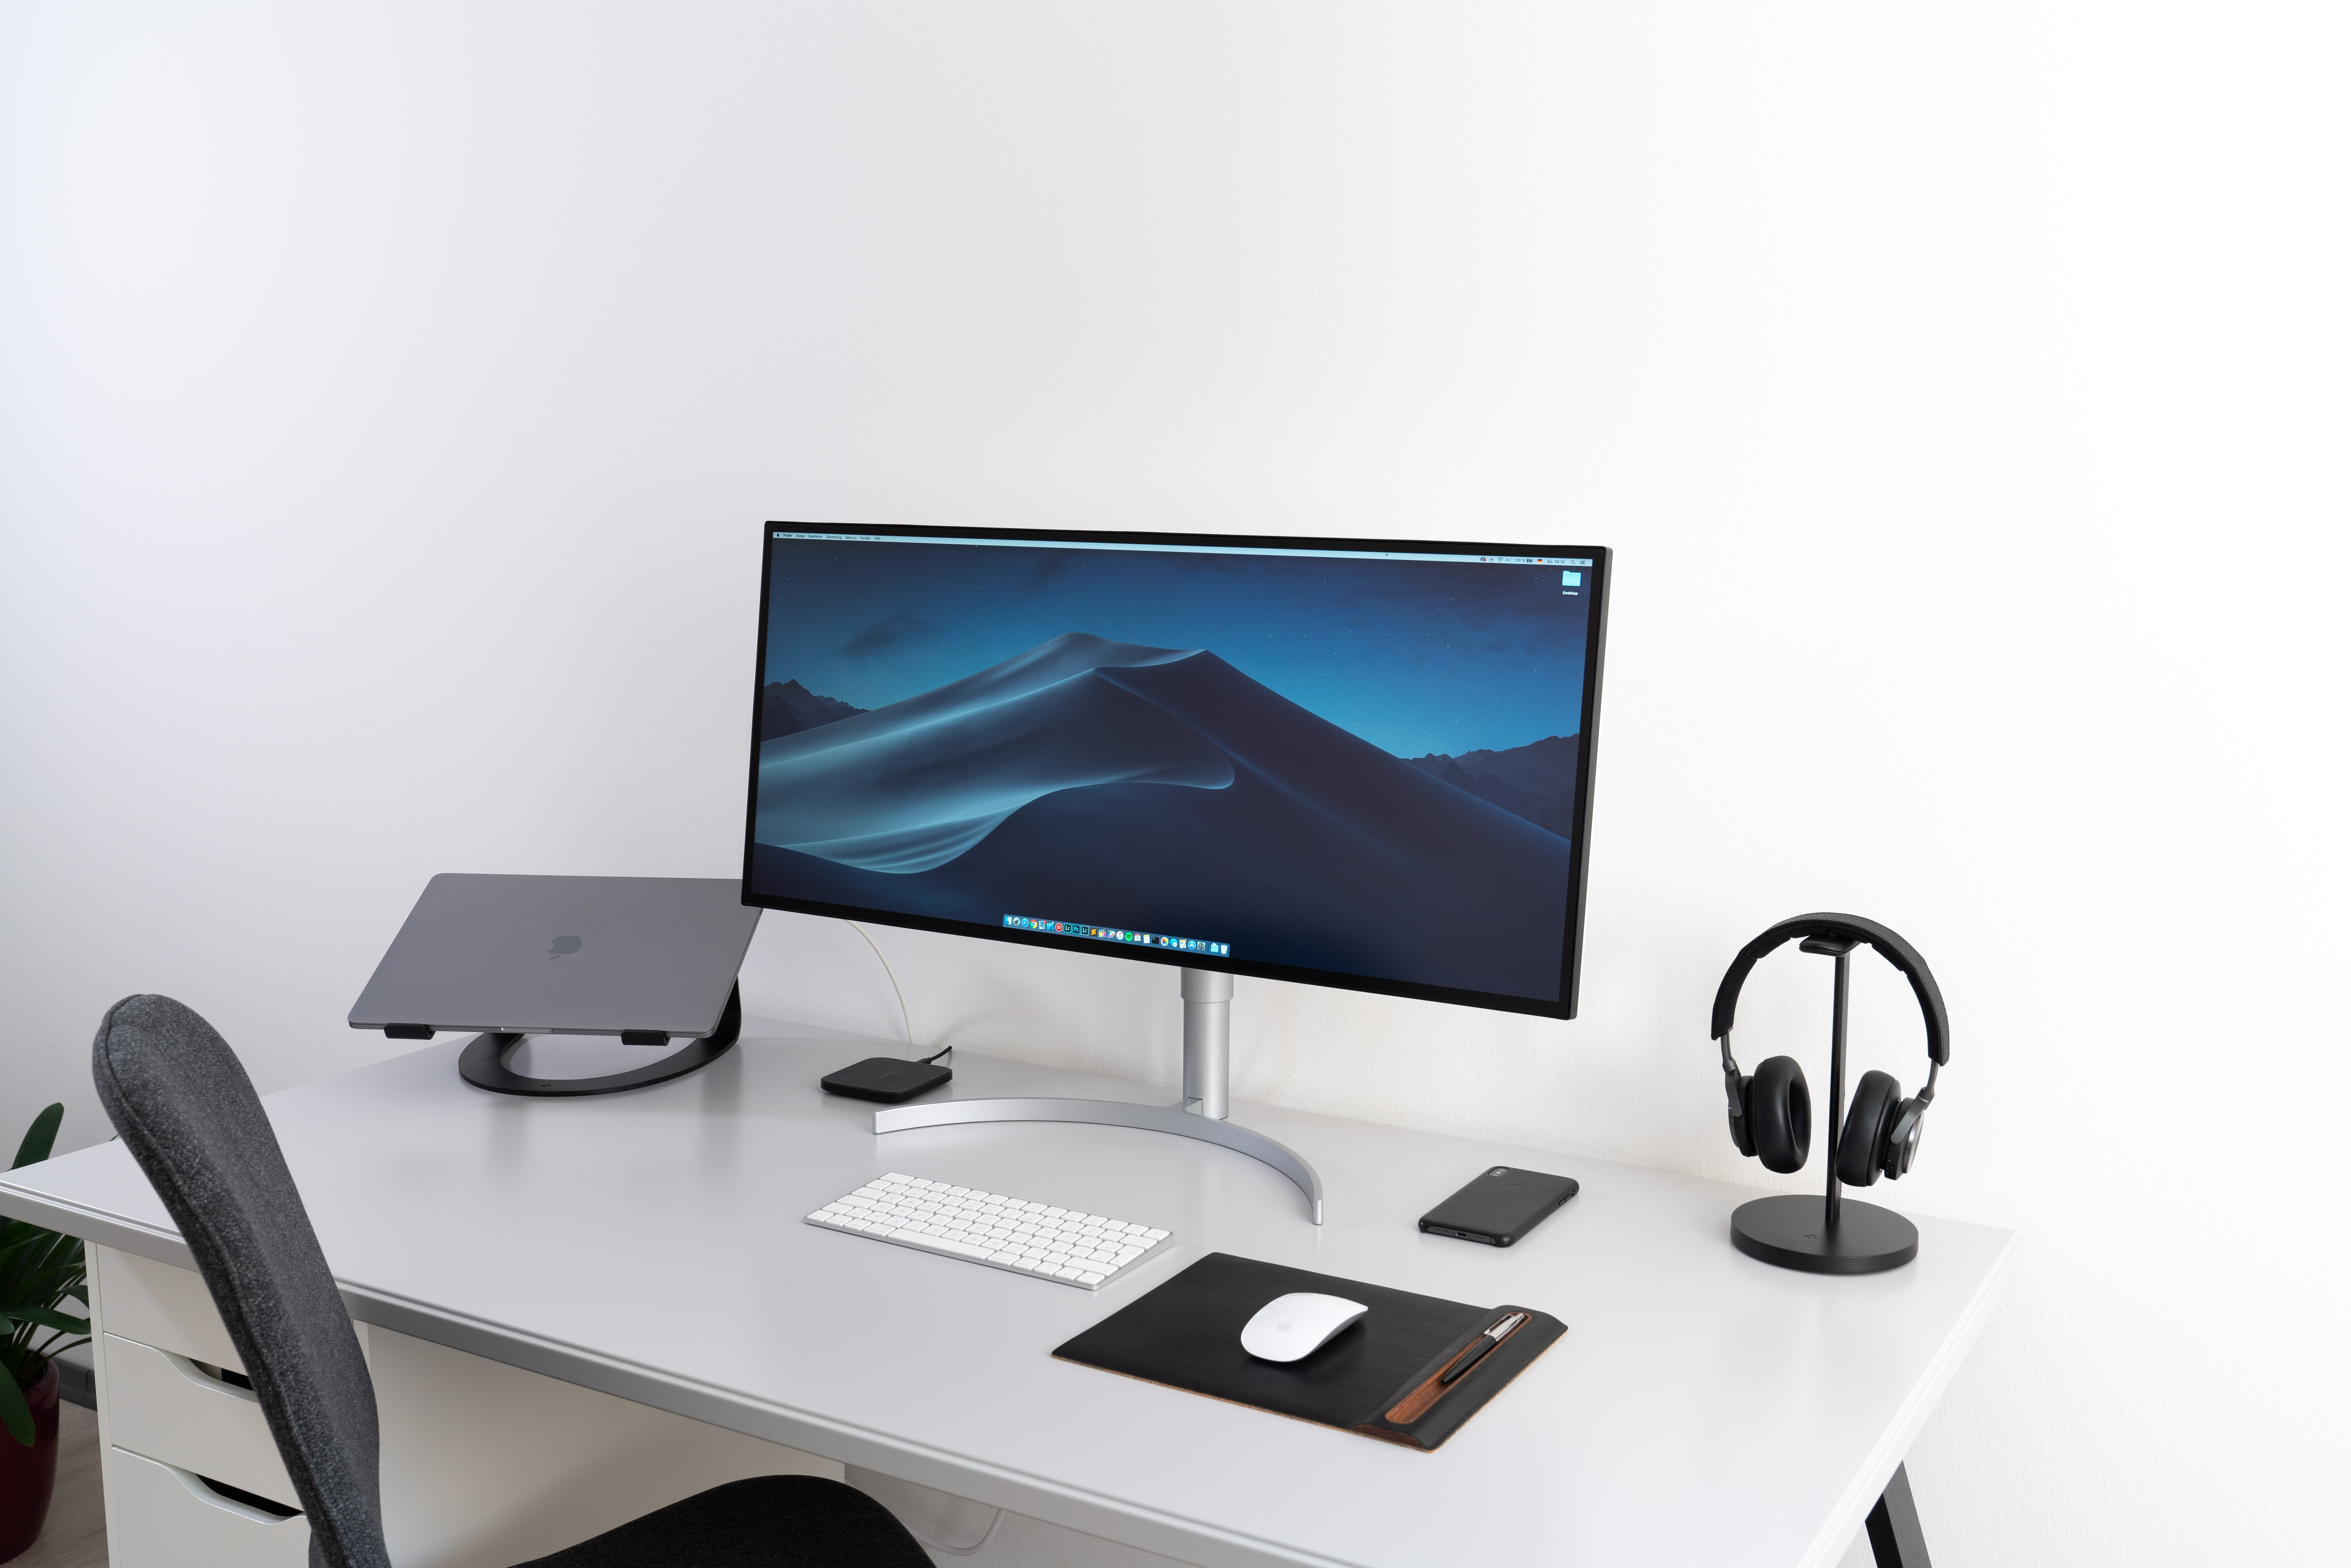 black flat widescreen computer monitor with with Apple Magic Keyboard and mouse on desk